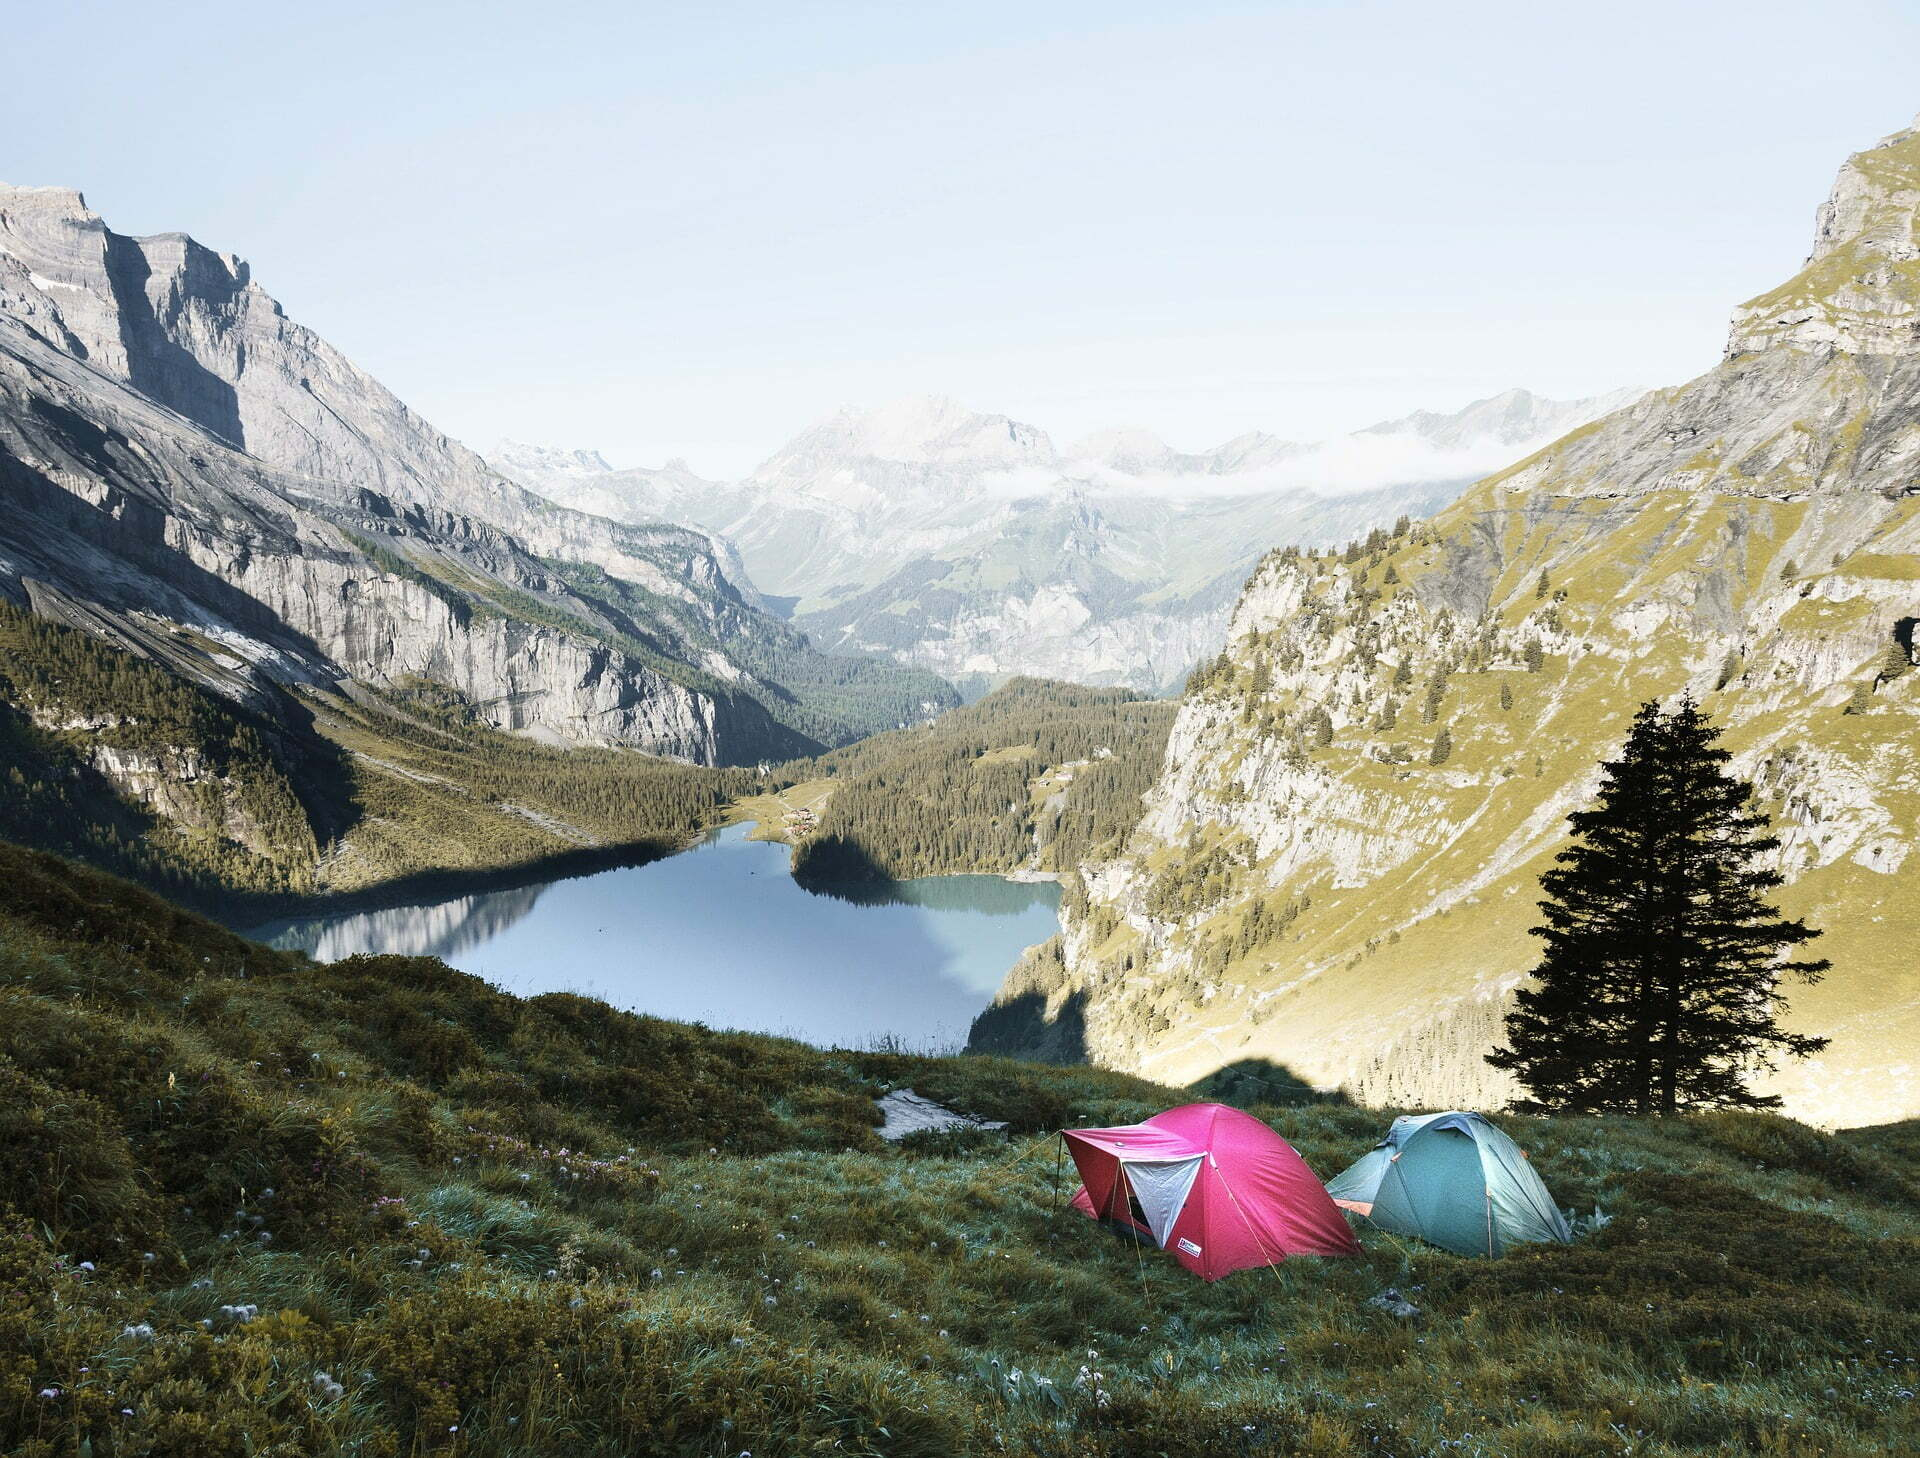 camping list of essentials